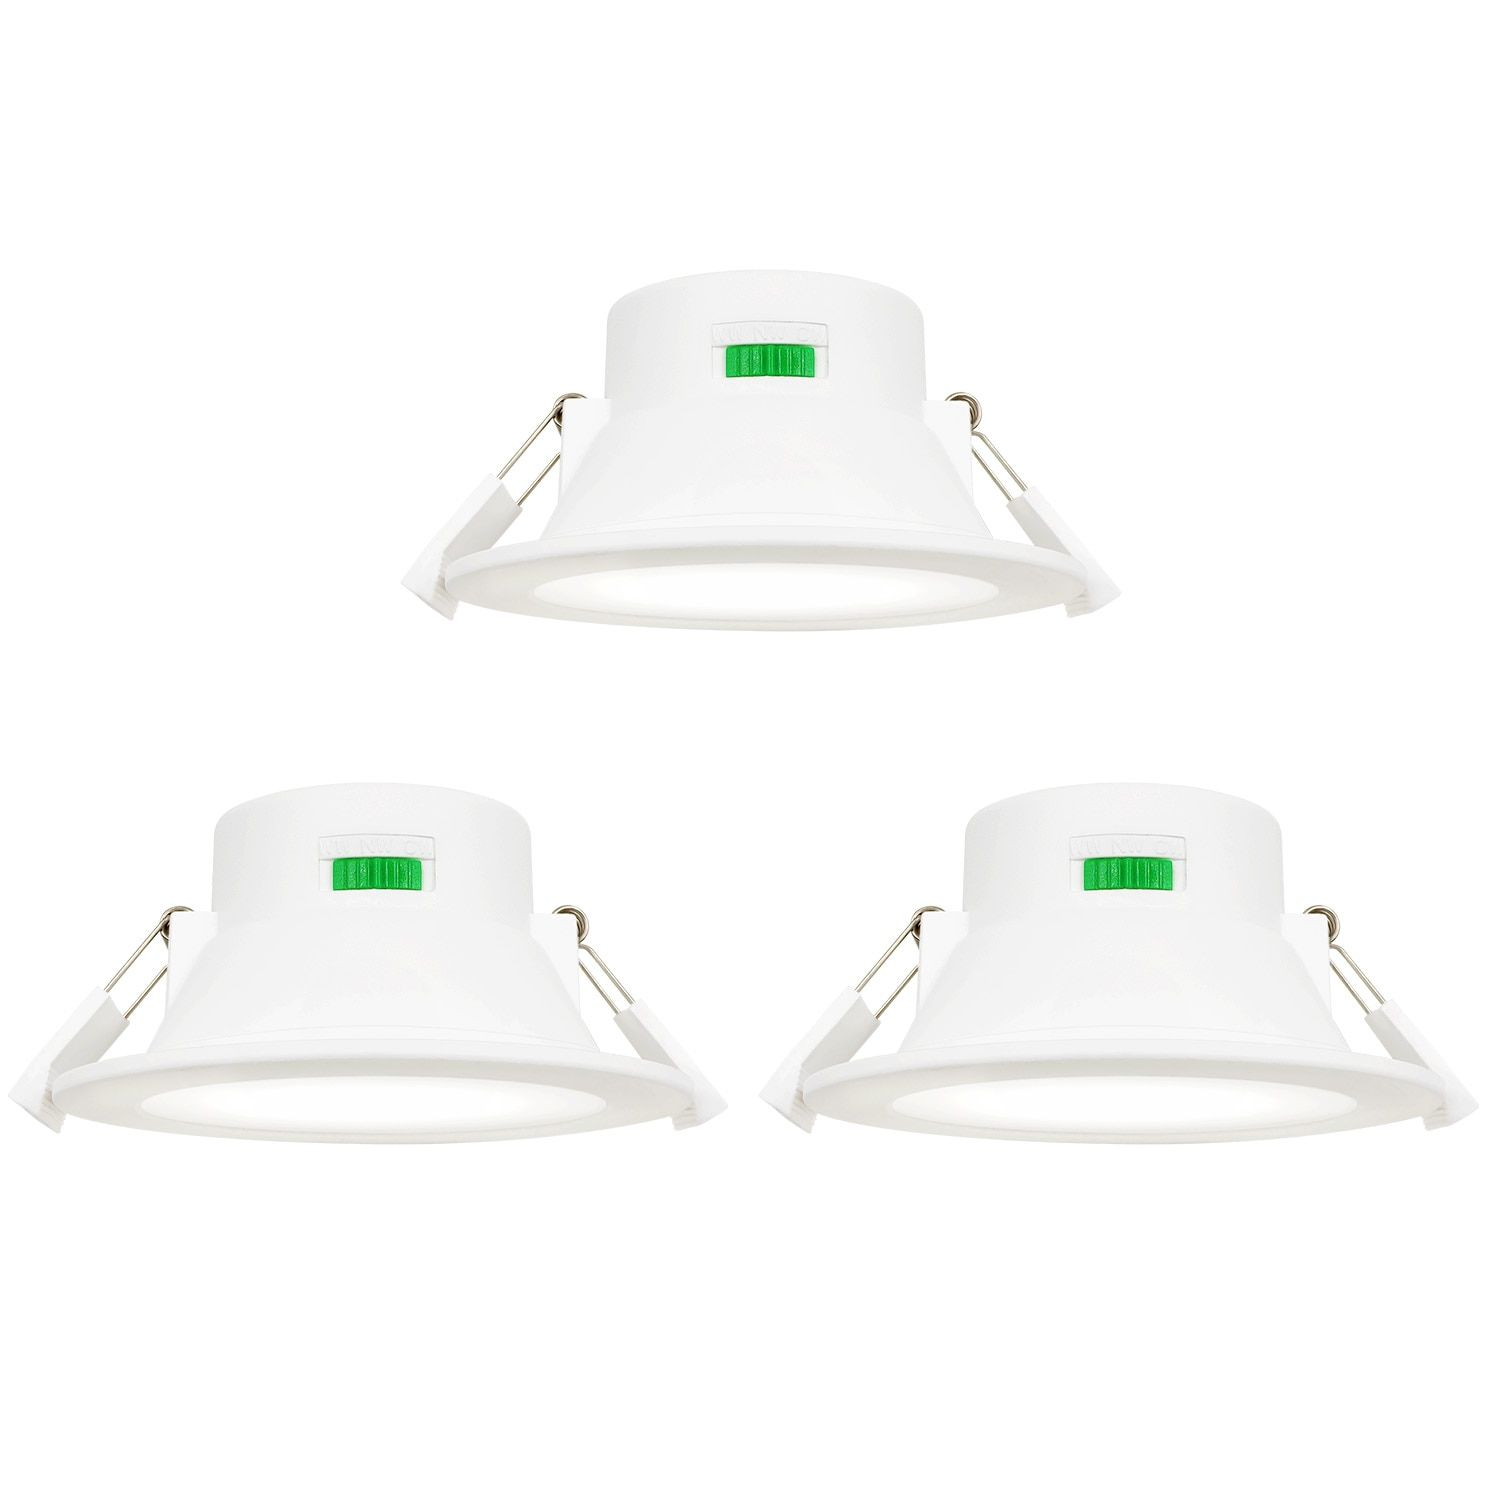 Dimmable 10w Led Ceiling Downlights Recessed Lights Warm Cool